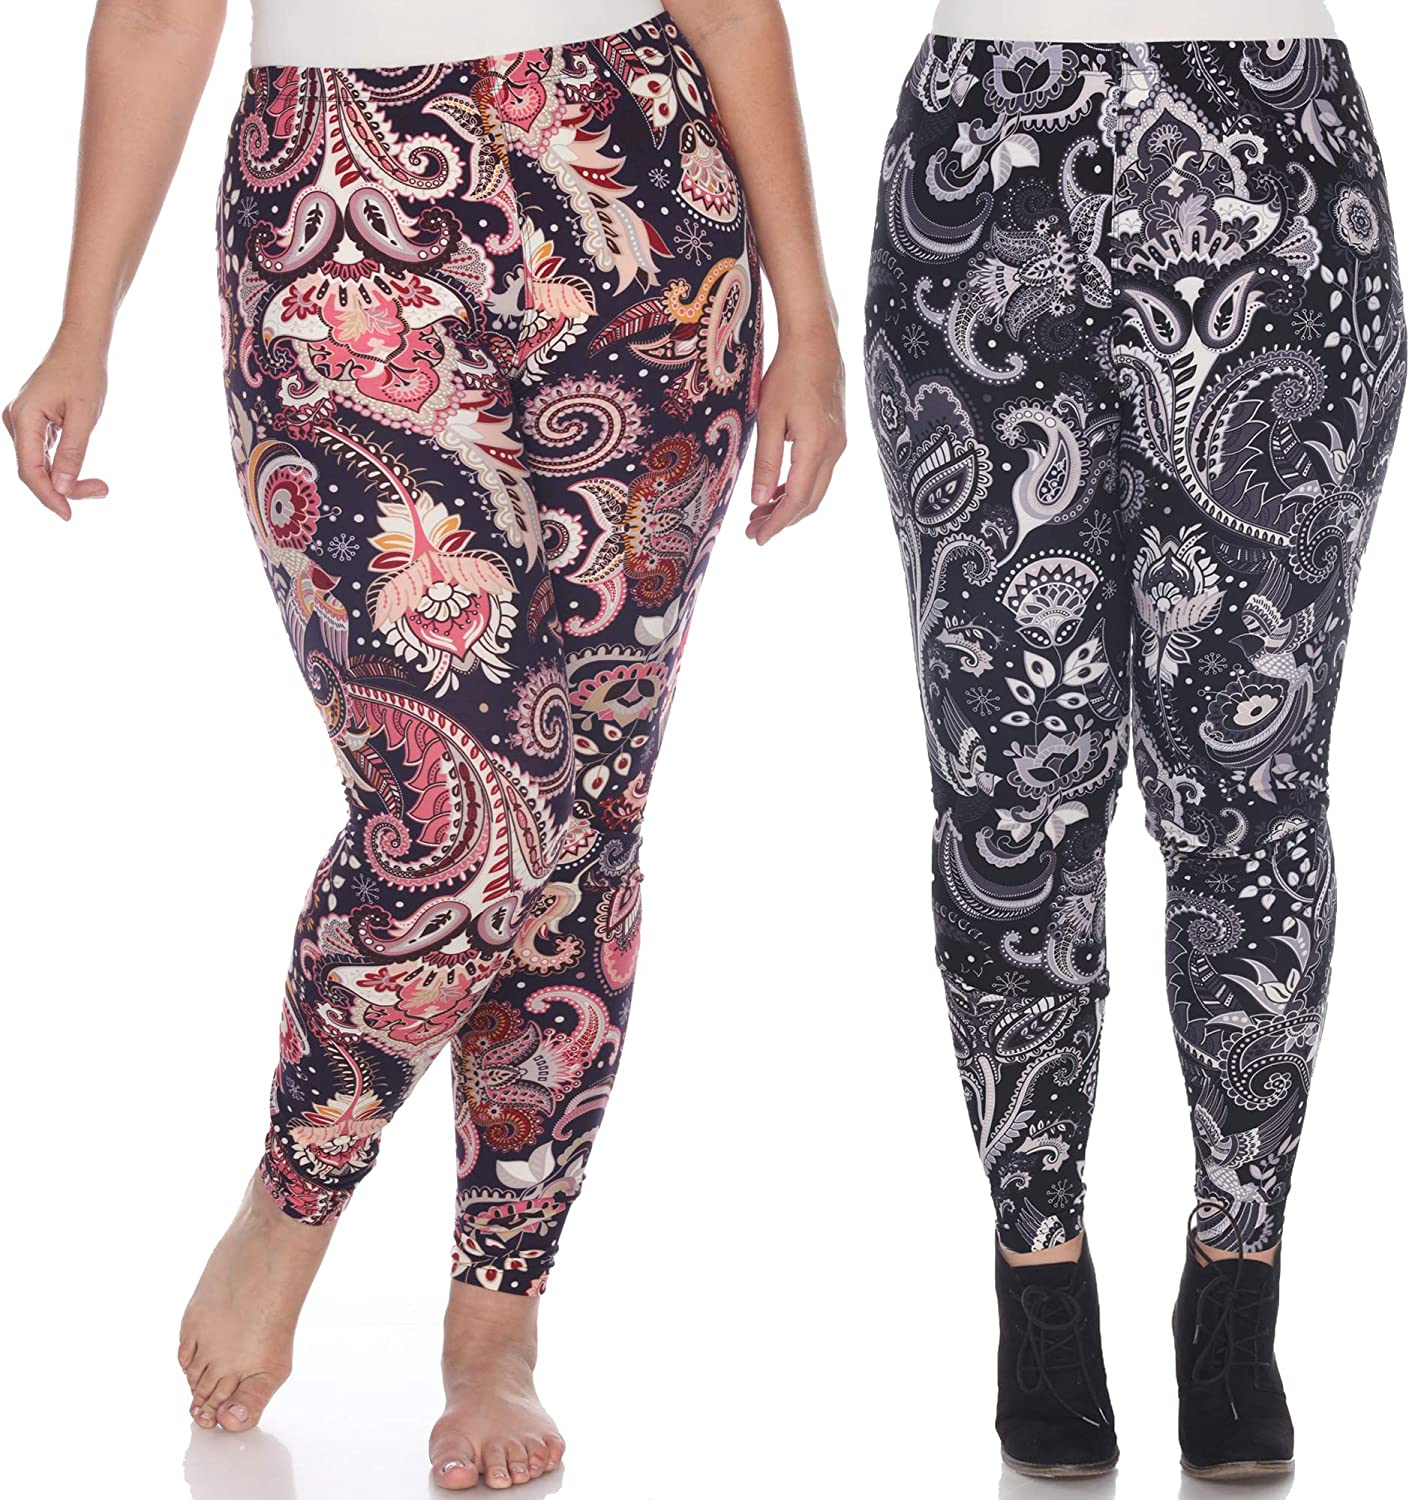 white mark Pack of Two ONE Size Plus Size Printed Soft Leggings